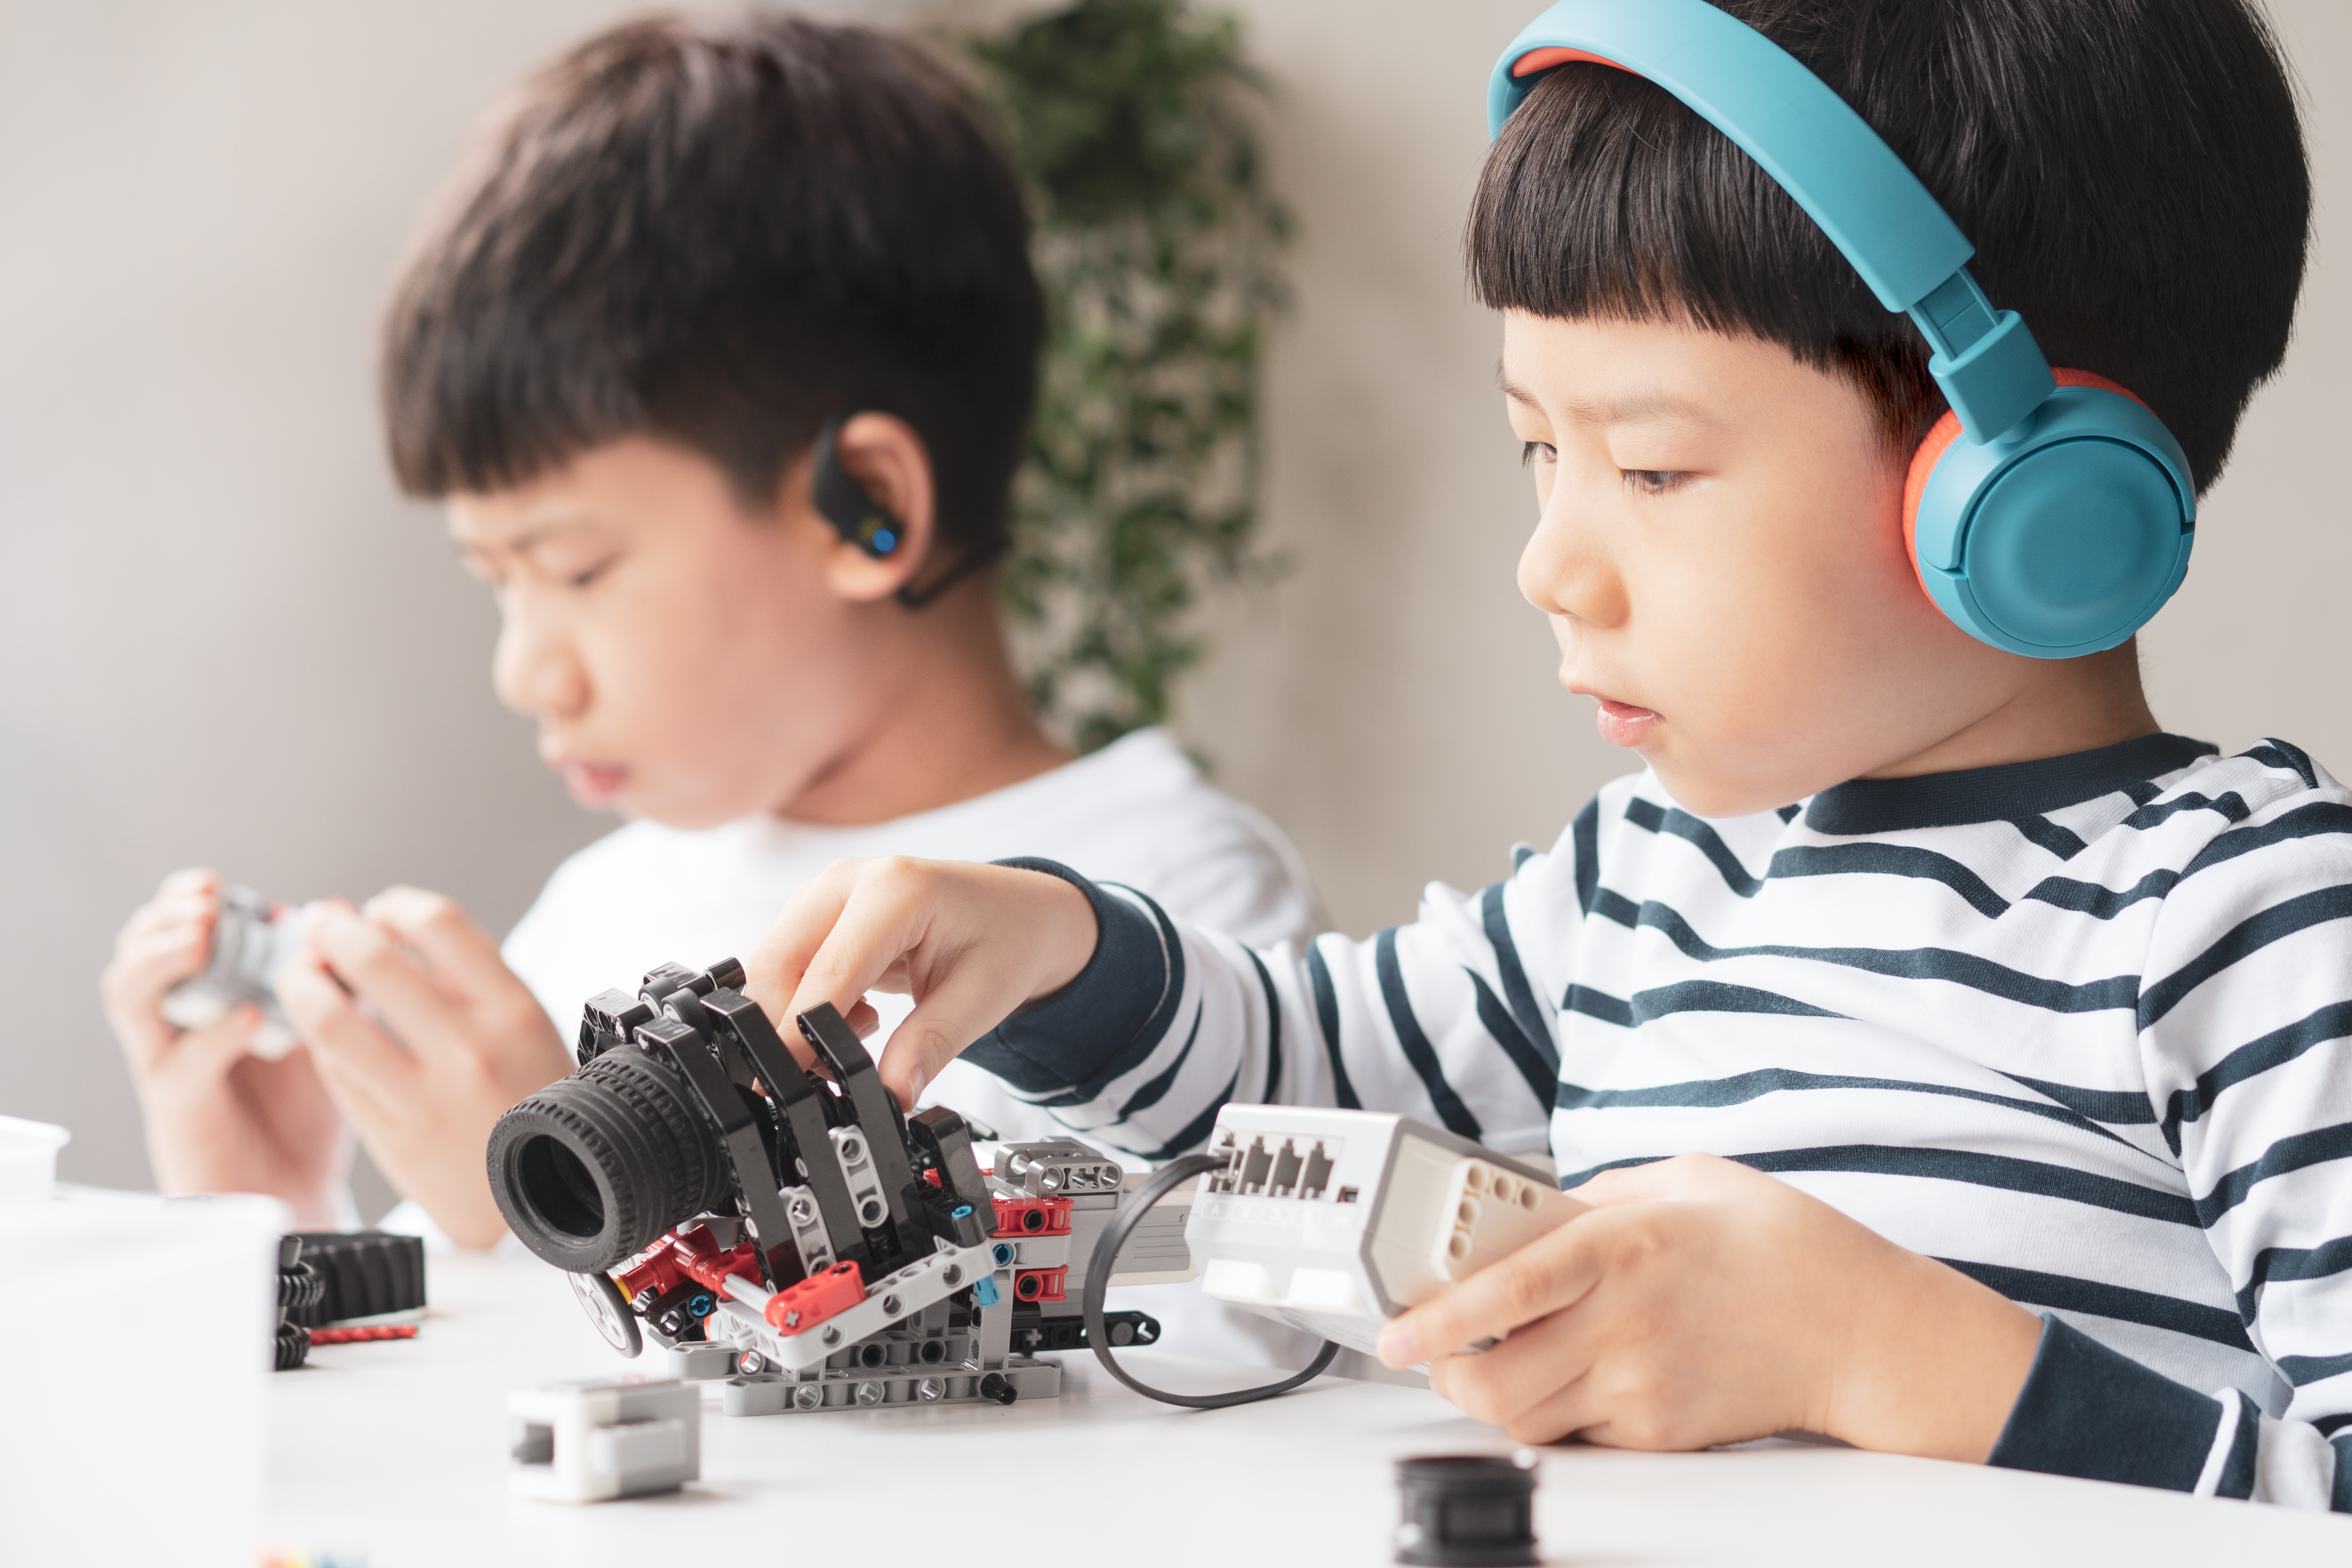 2 kids playing with electronics